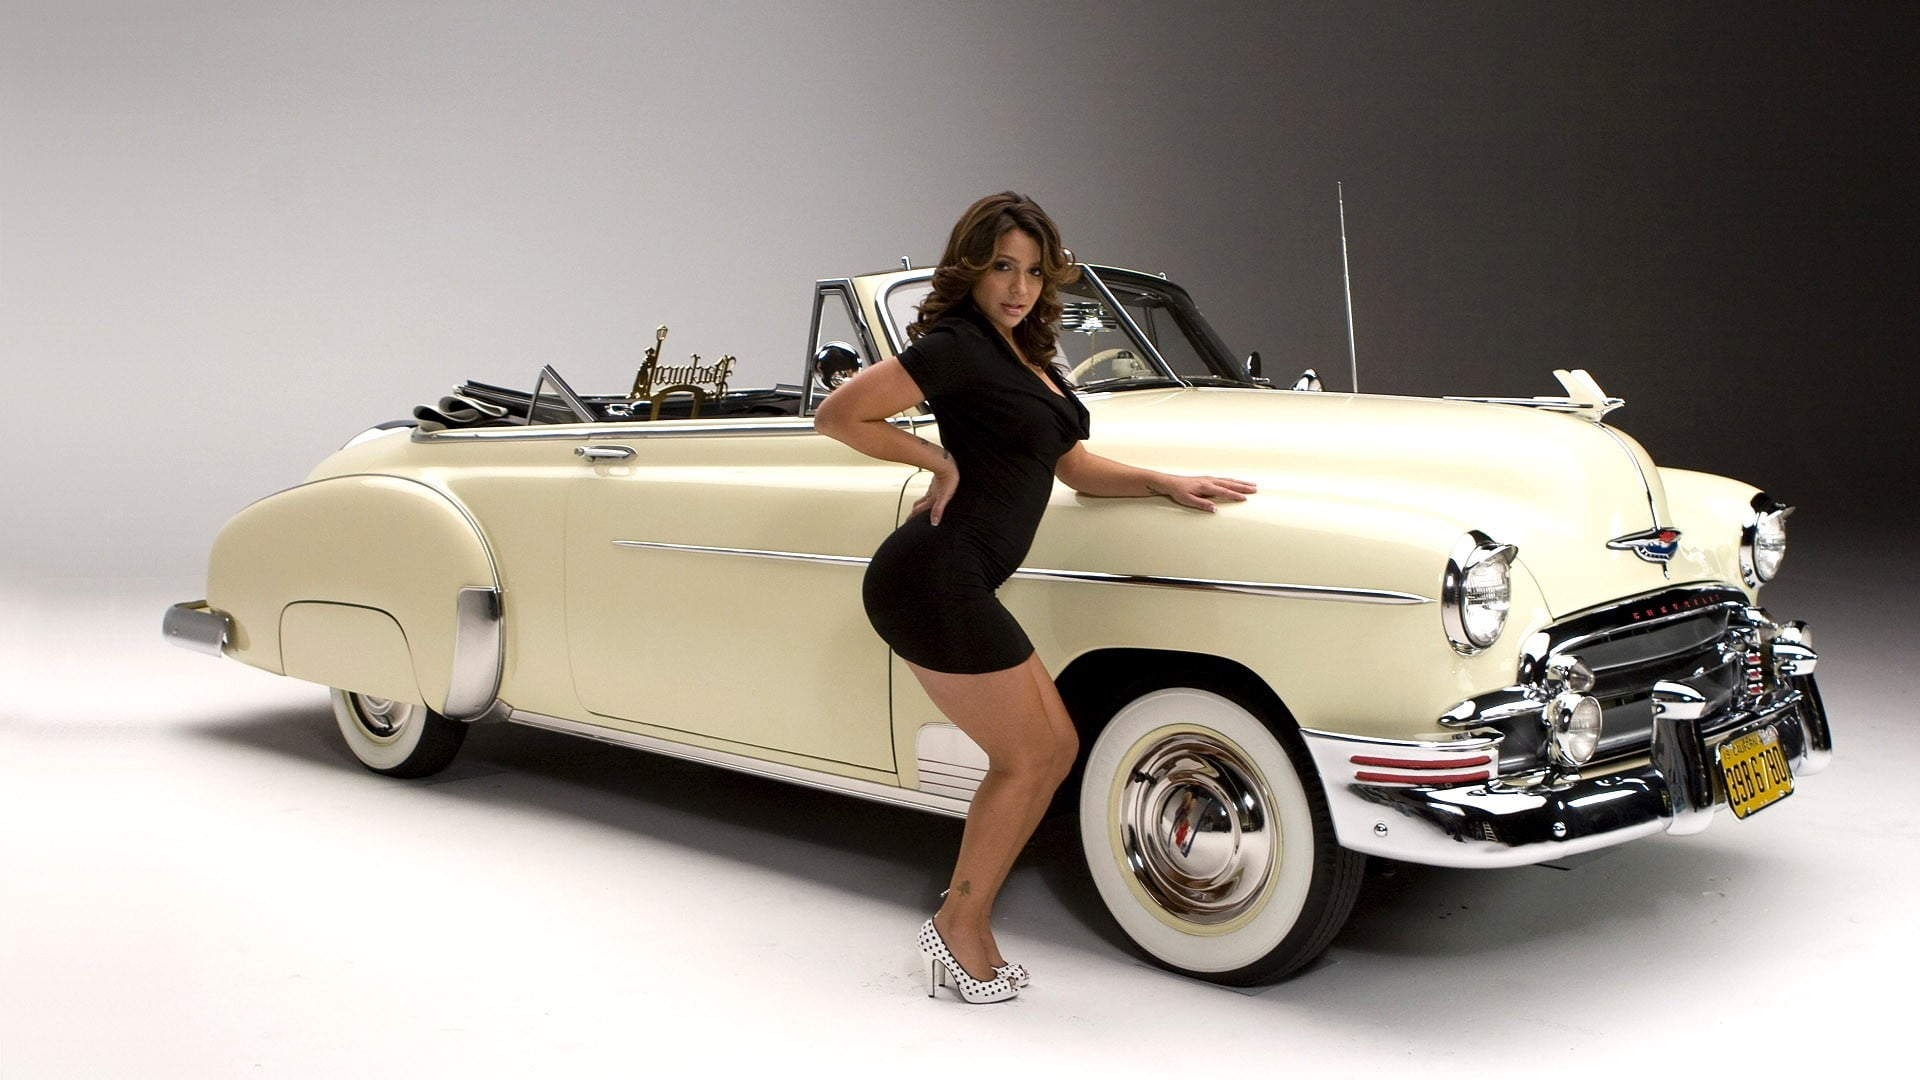 VIDA WITH OLDEST CARS